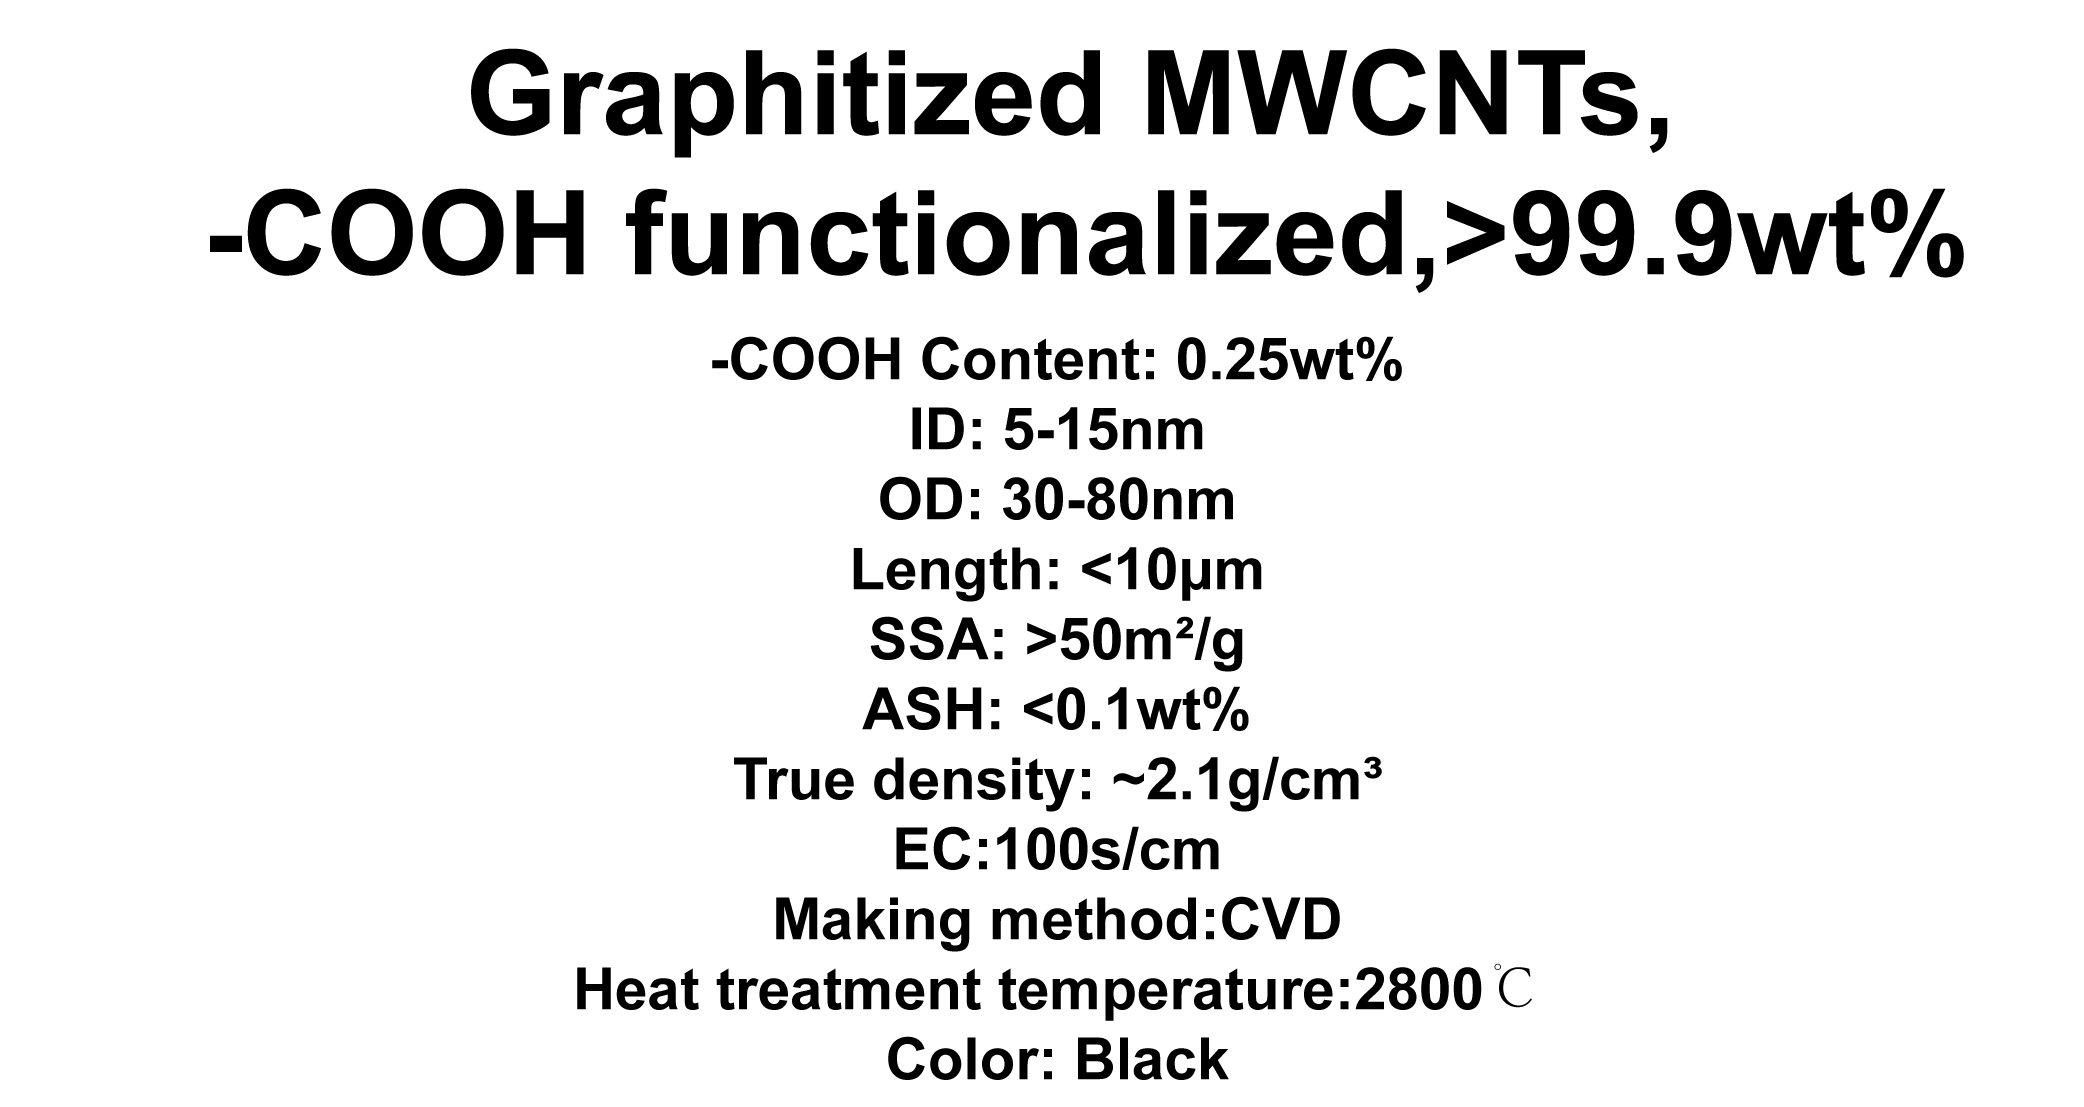 Graphitized MWCNTs, -COOH functionalized (TNGMC8)